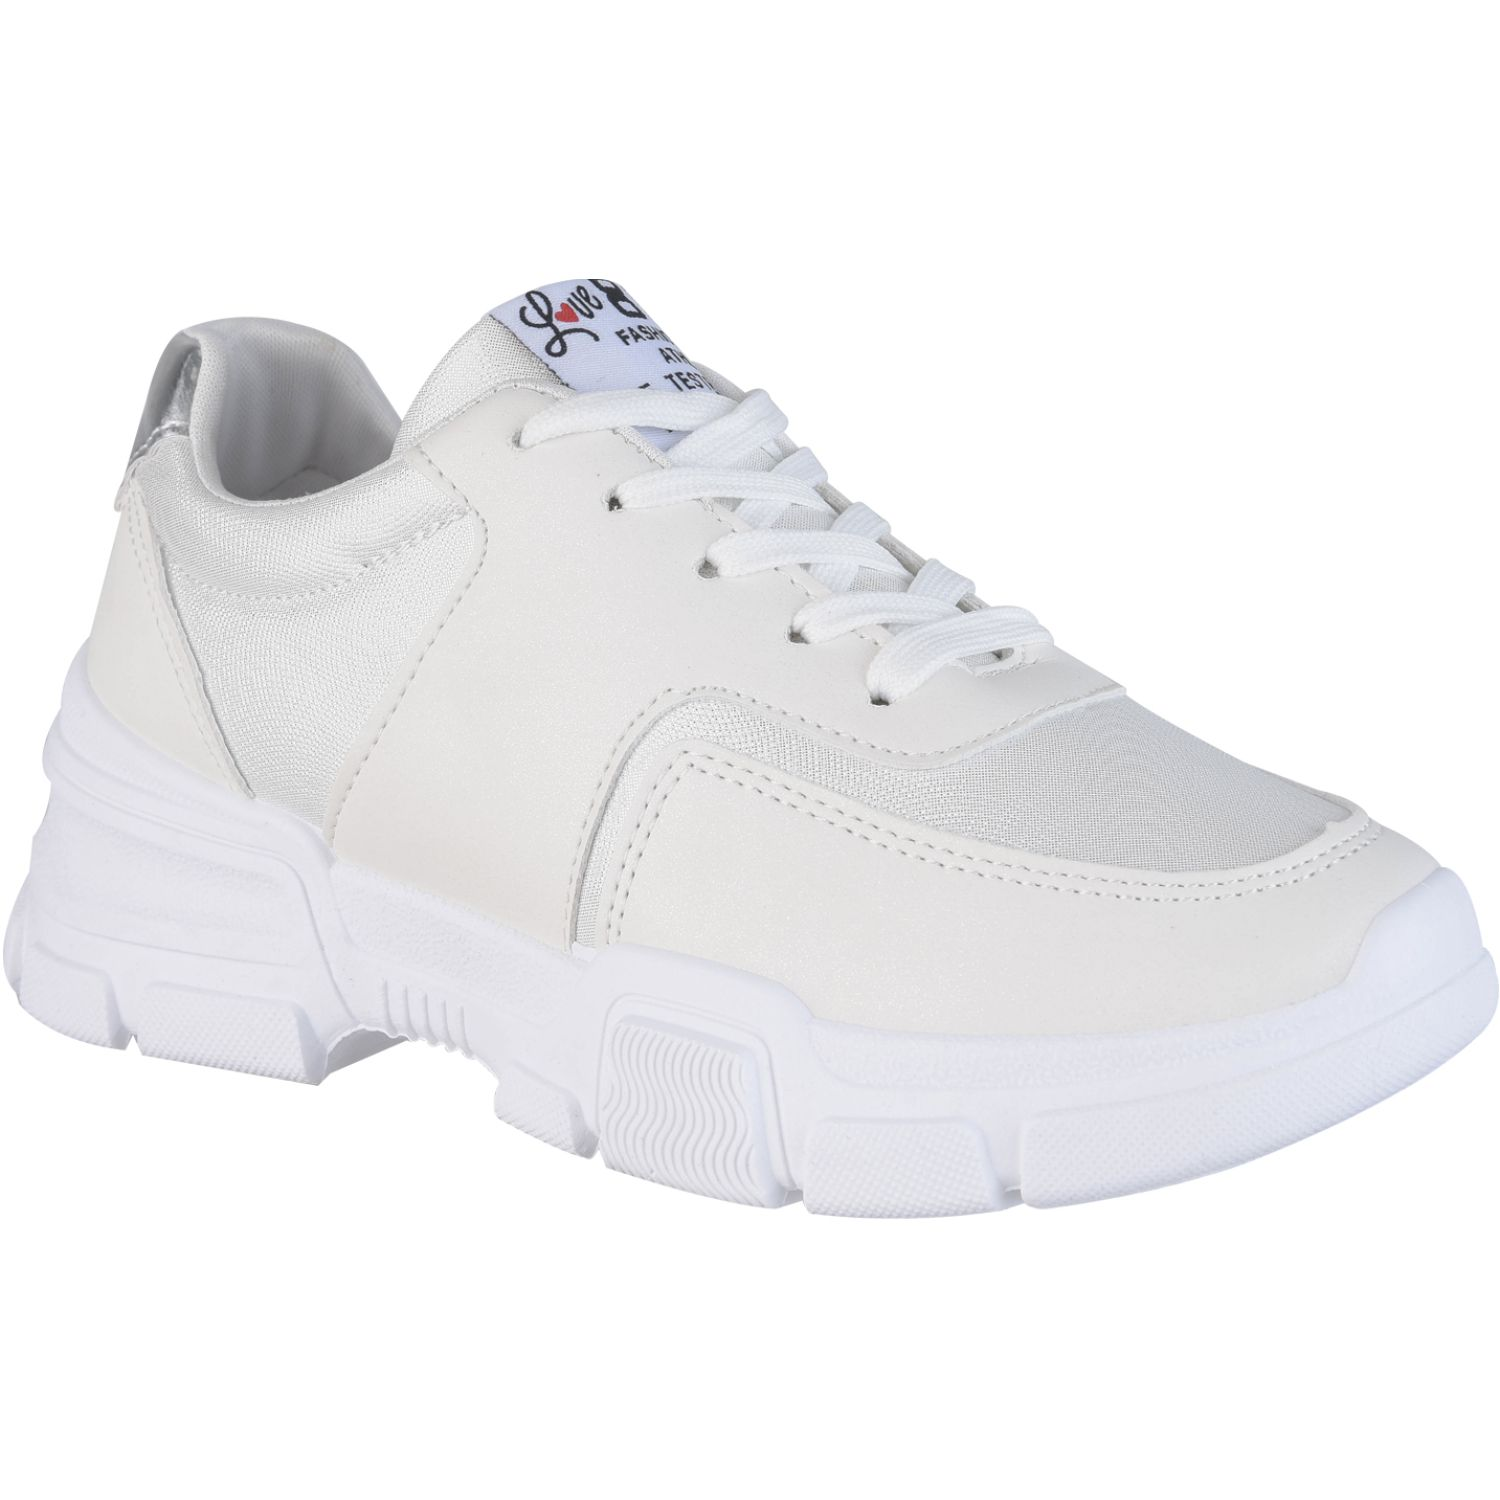 Platanitos Z 1031 Blanco Zapatillas de moda